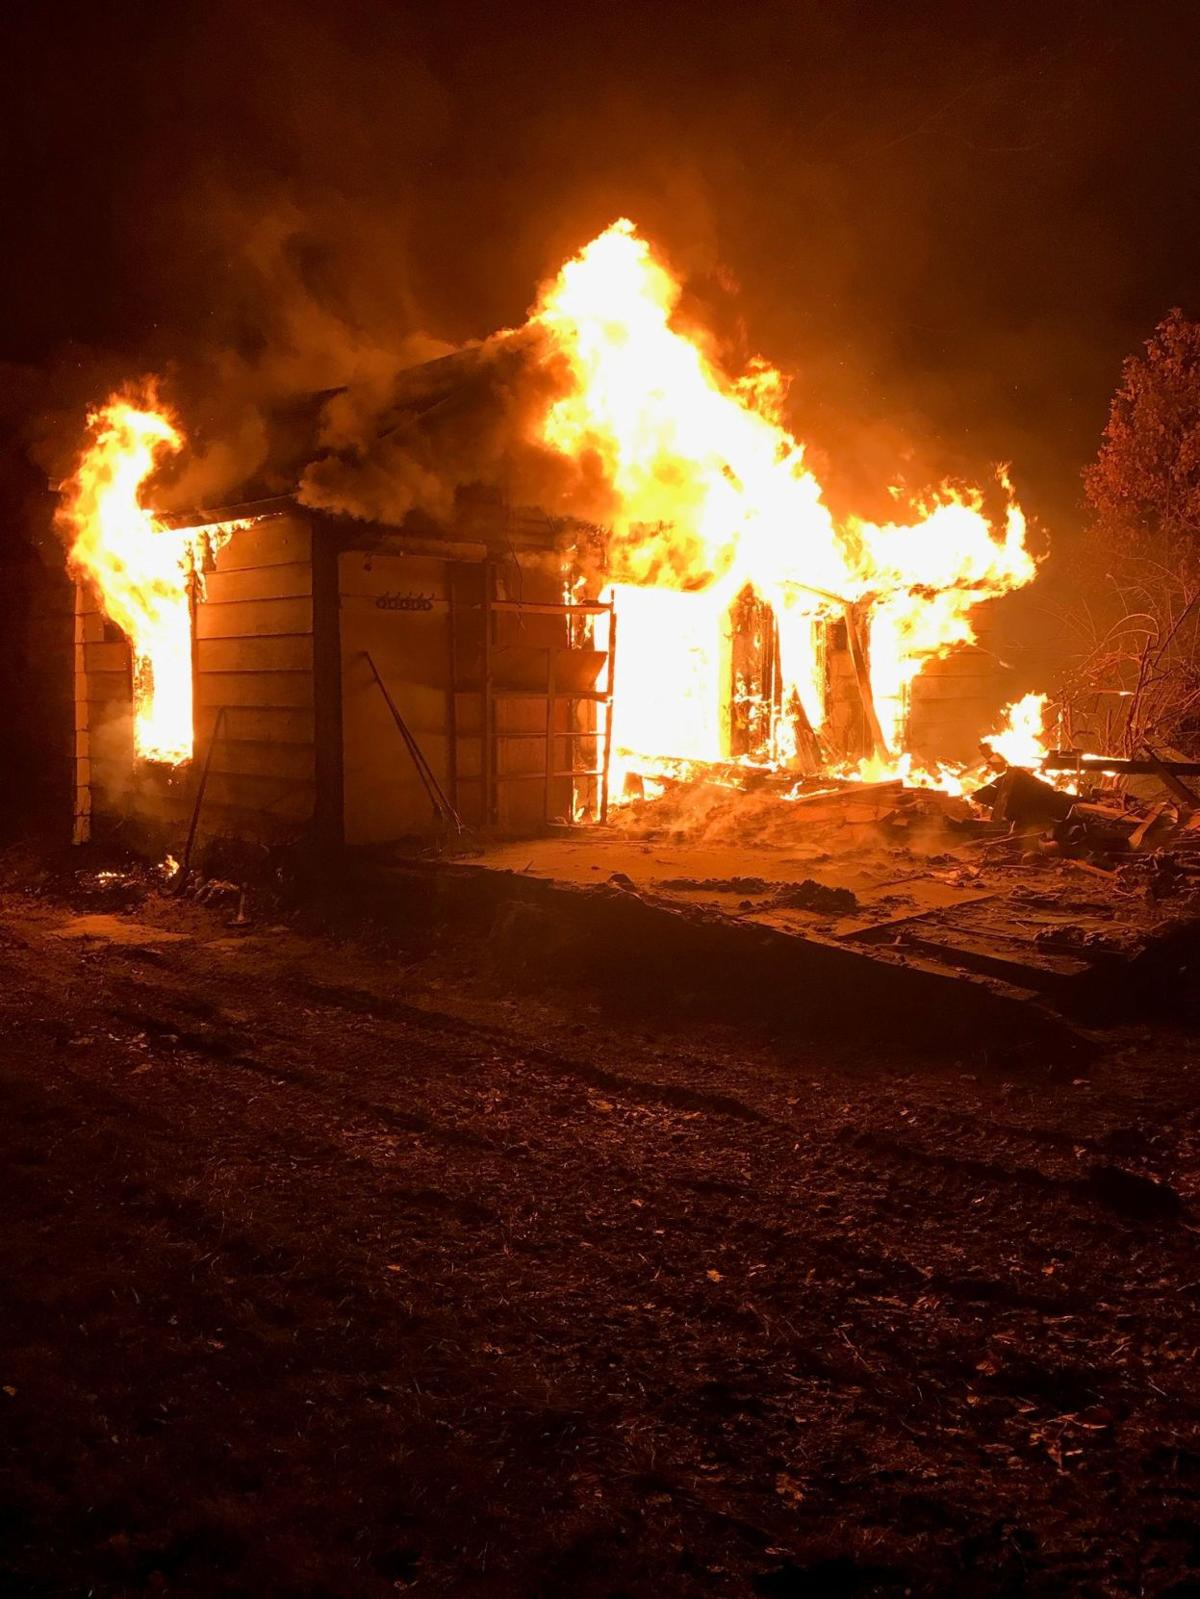 Tips sought in Hicksville house fire